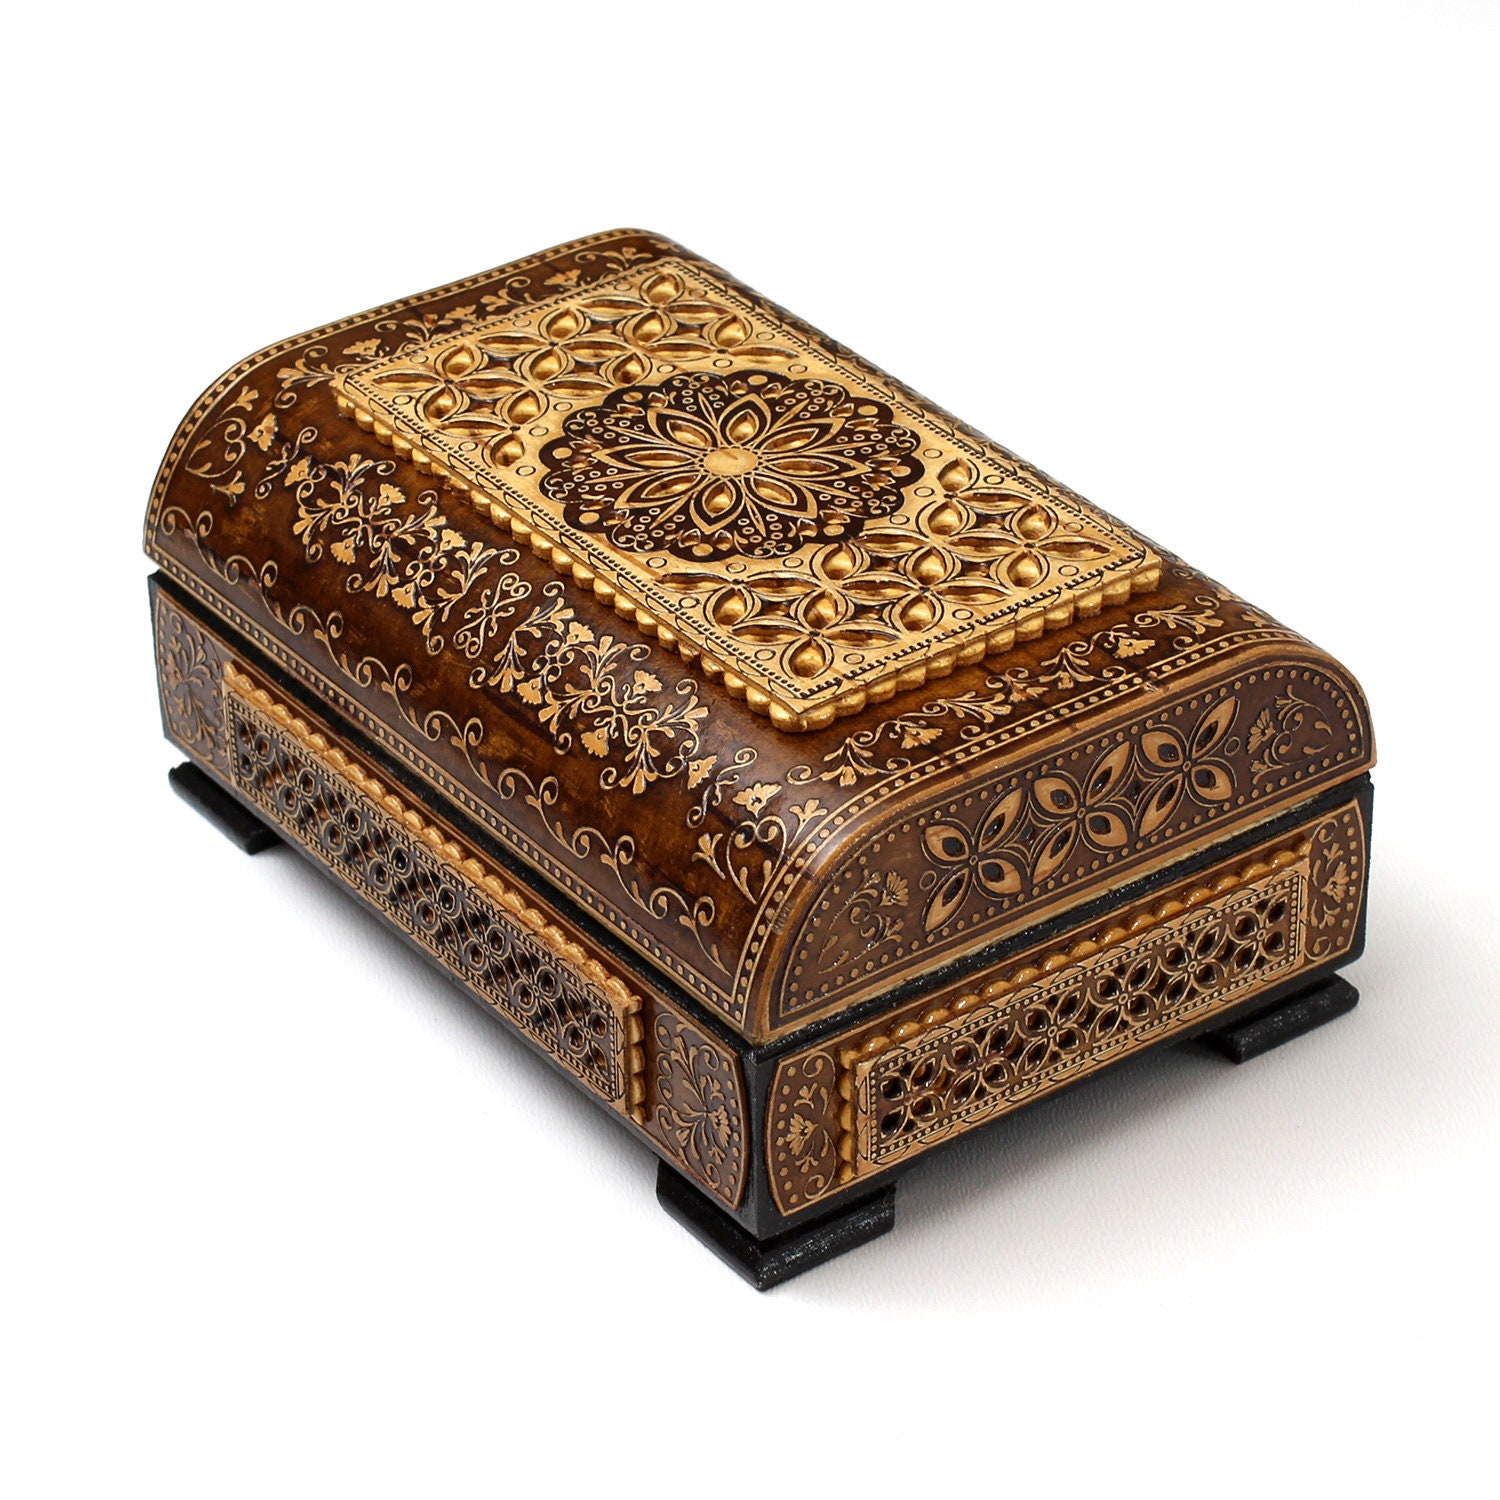 Wooden box for trinkets, inlaid with birch bark. Inside there is velvet at the bottom, and an image of nature under the lid.